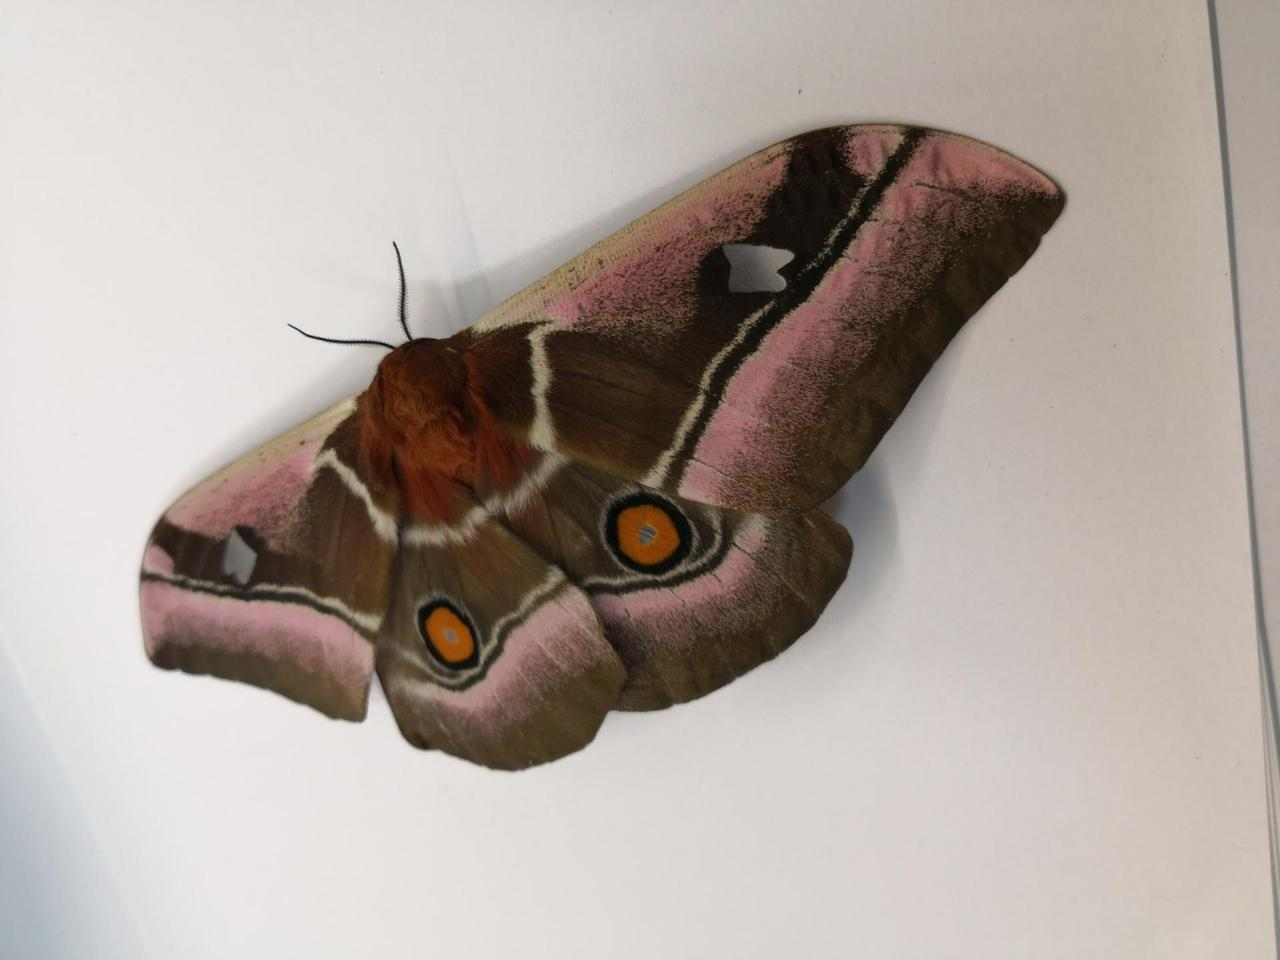 A Cabbage Tree Emperor moth (Bunaea alcinoe), one of the species used in the research